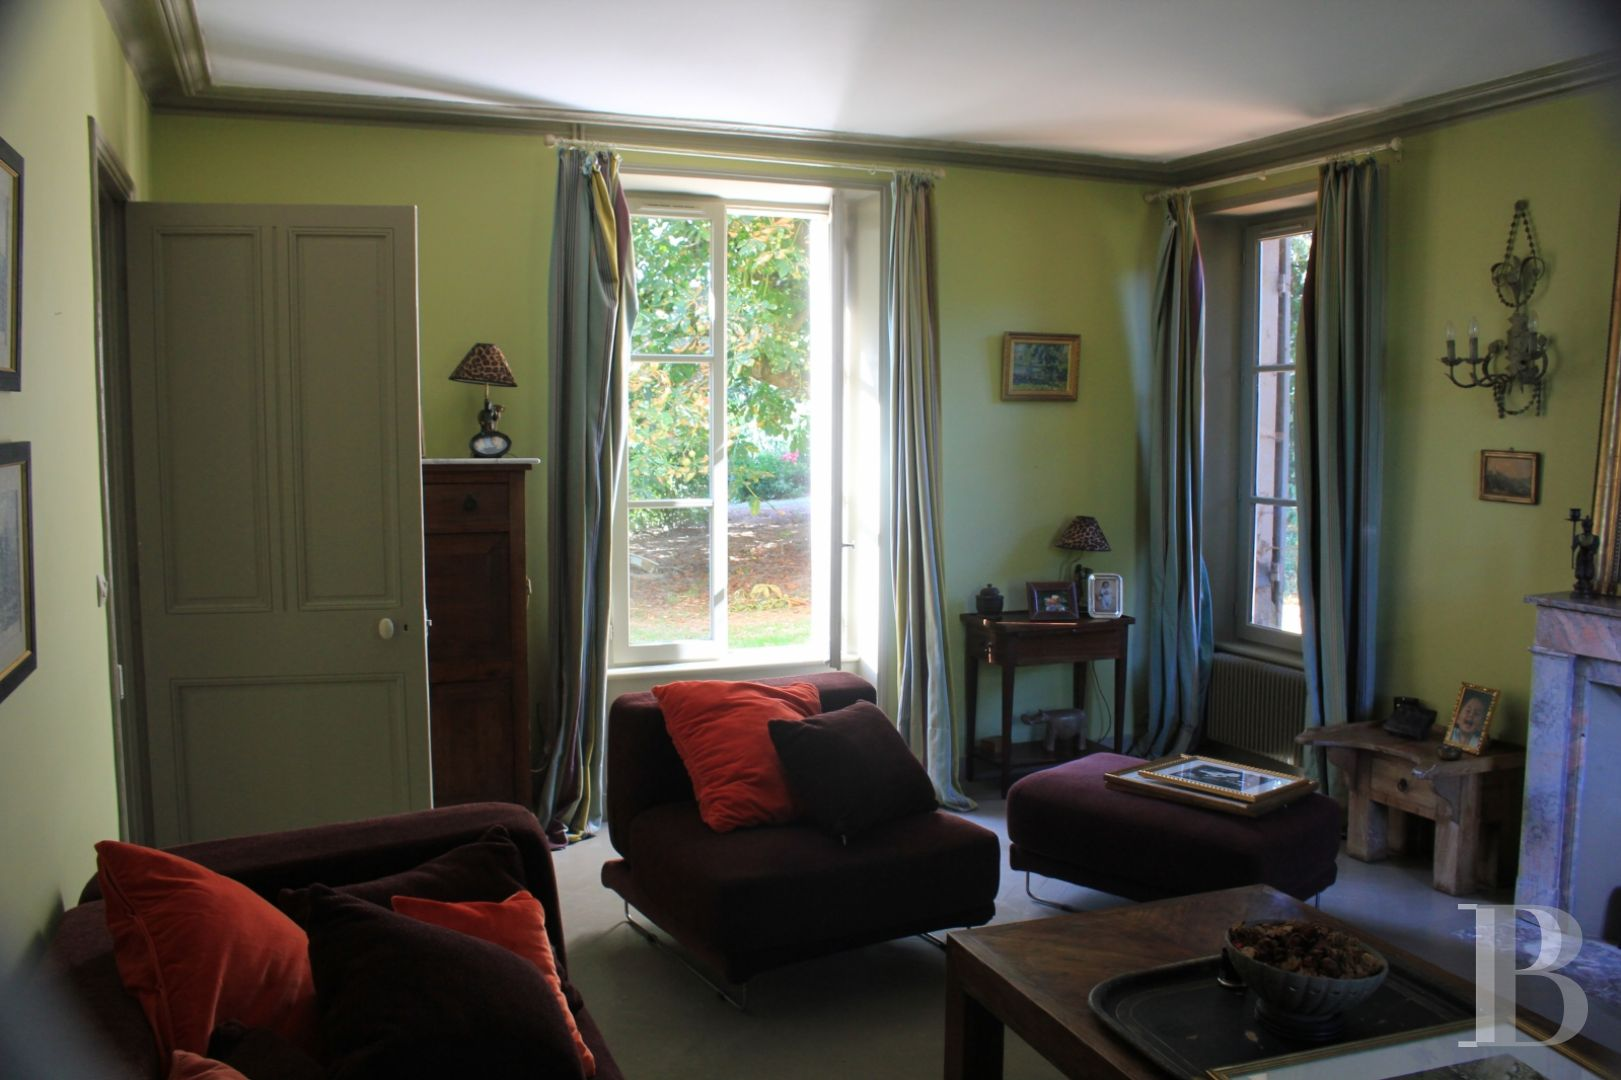 France mansions for sale lower normandy manors equestrian - 7 zoom